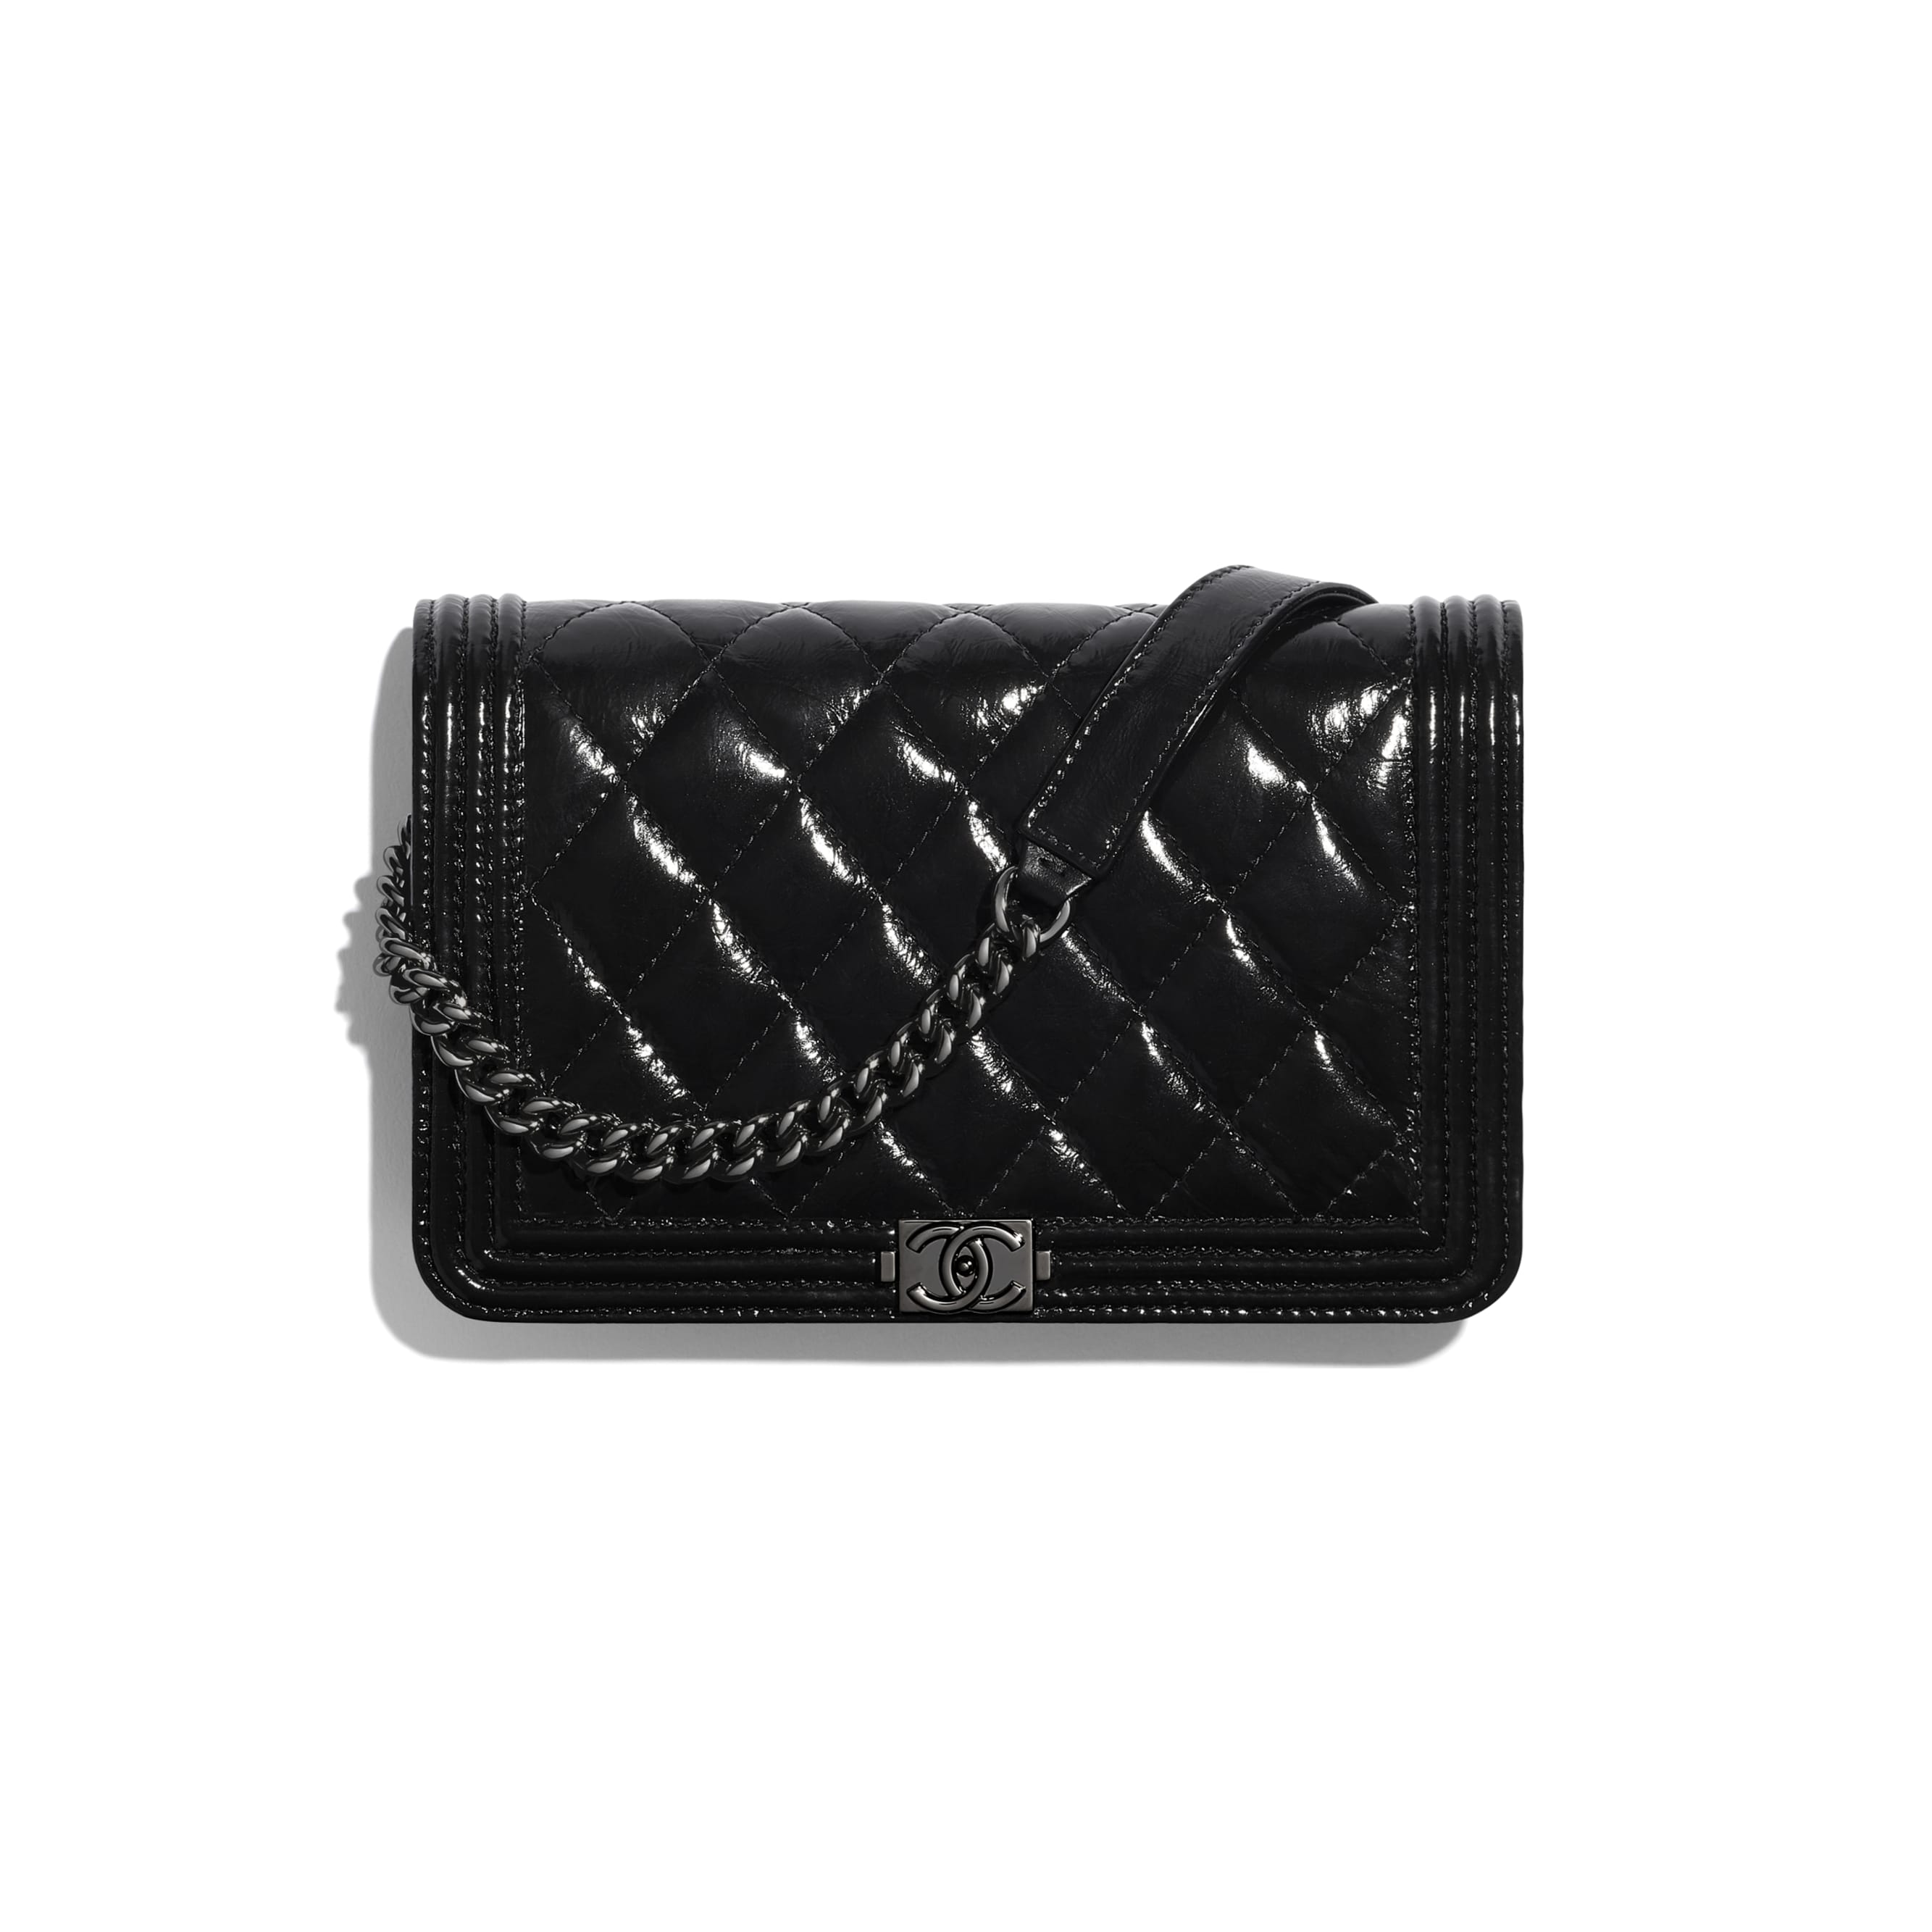 BOY CHANEL Wallet On Chain - Black - Aged Calfskin & Ruthenium-Finish Metal - CHANEL - Default view - see standard sized version